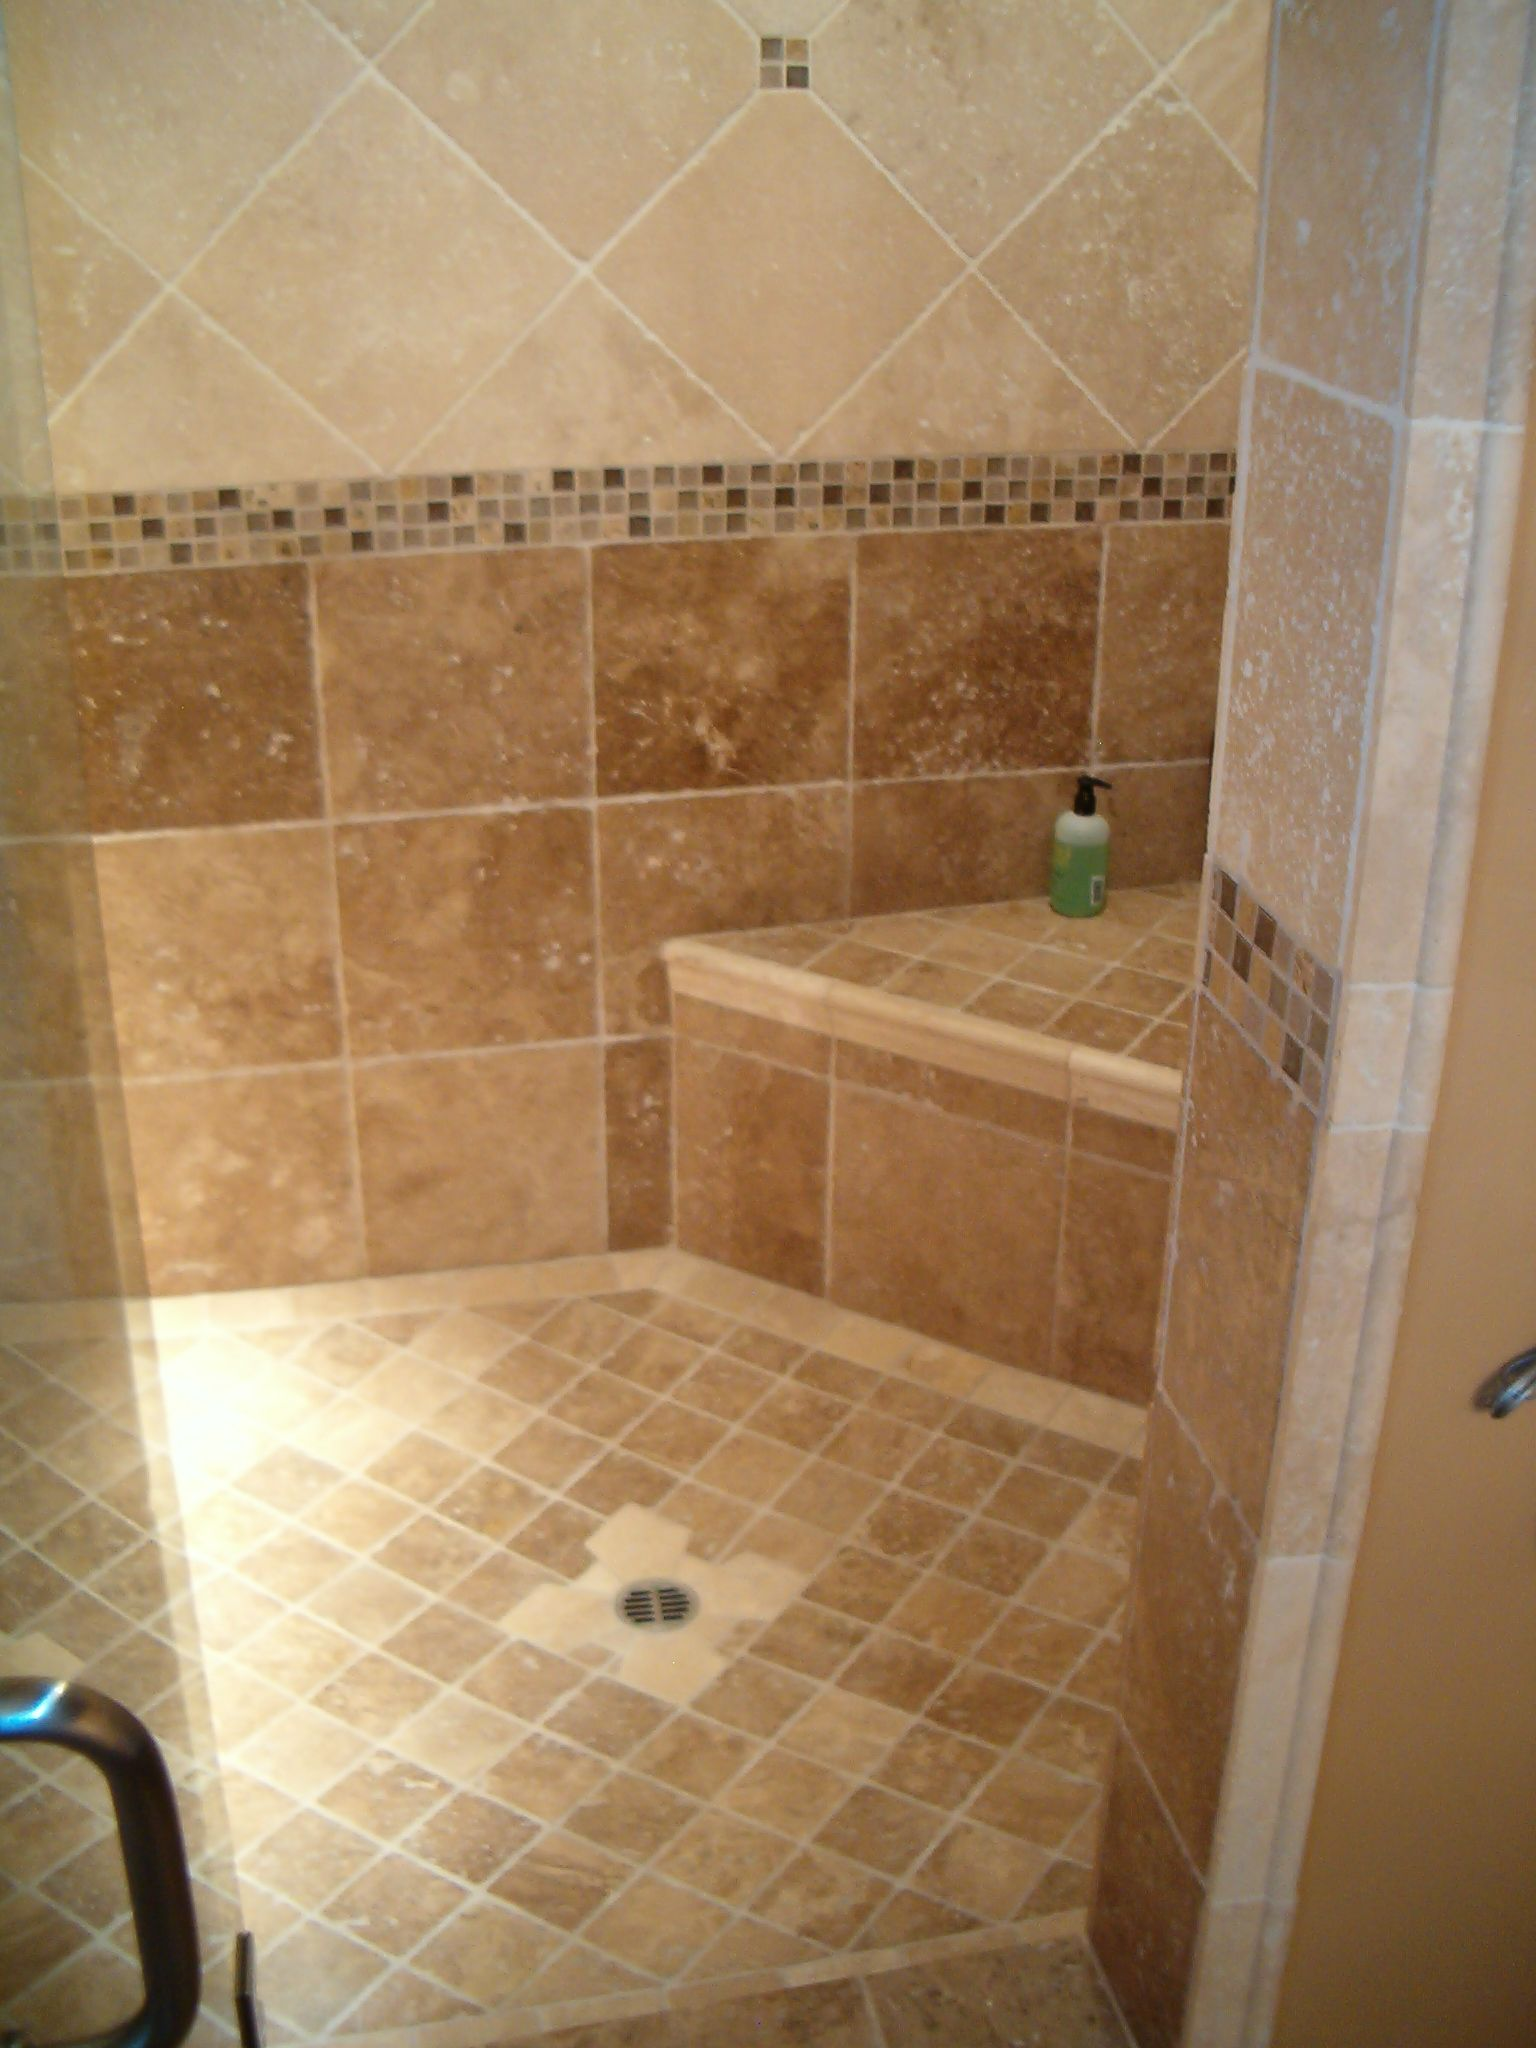 Learn How to Tile a Shower The Right Way | Koupelny